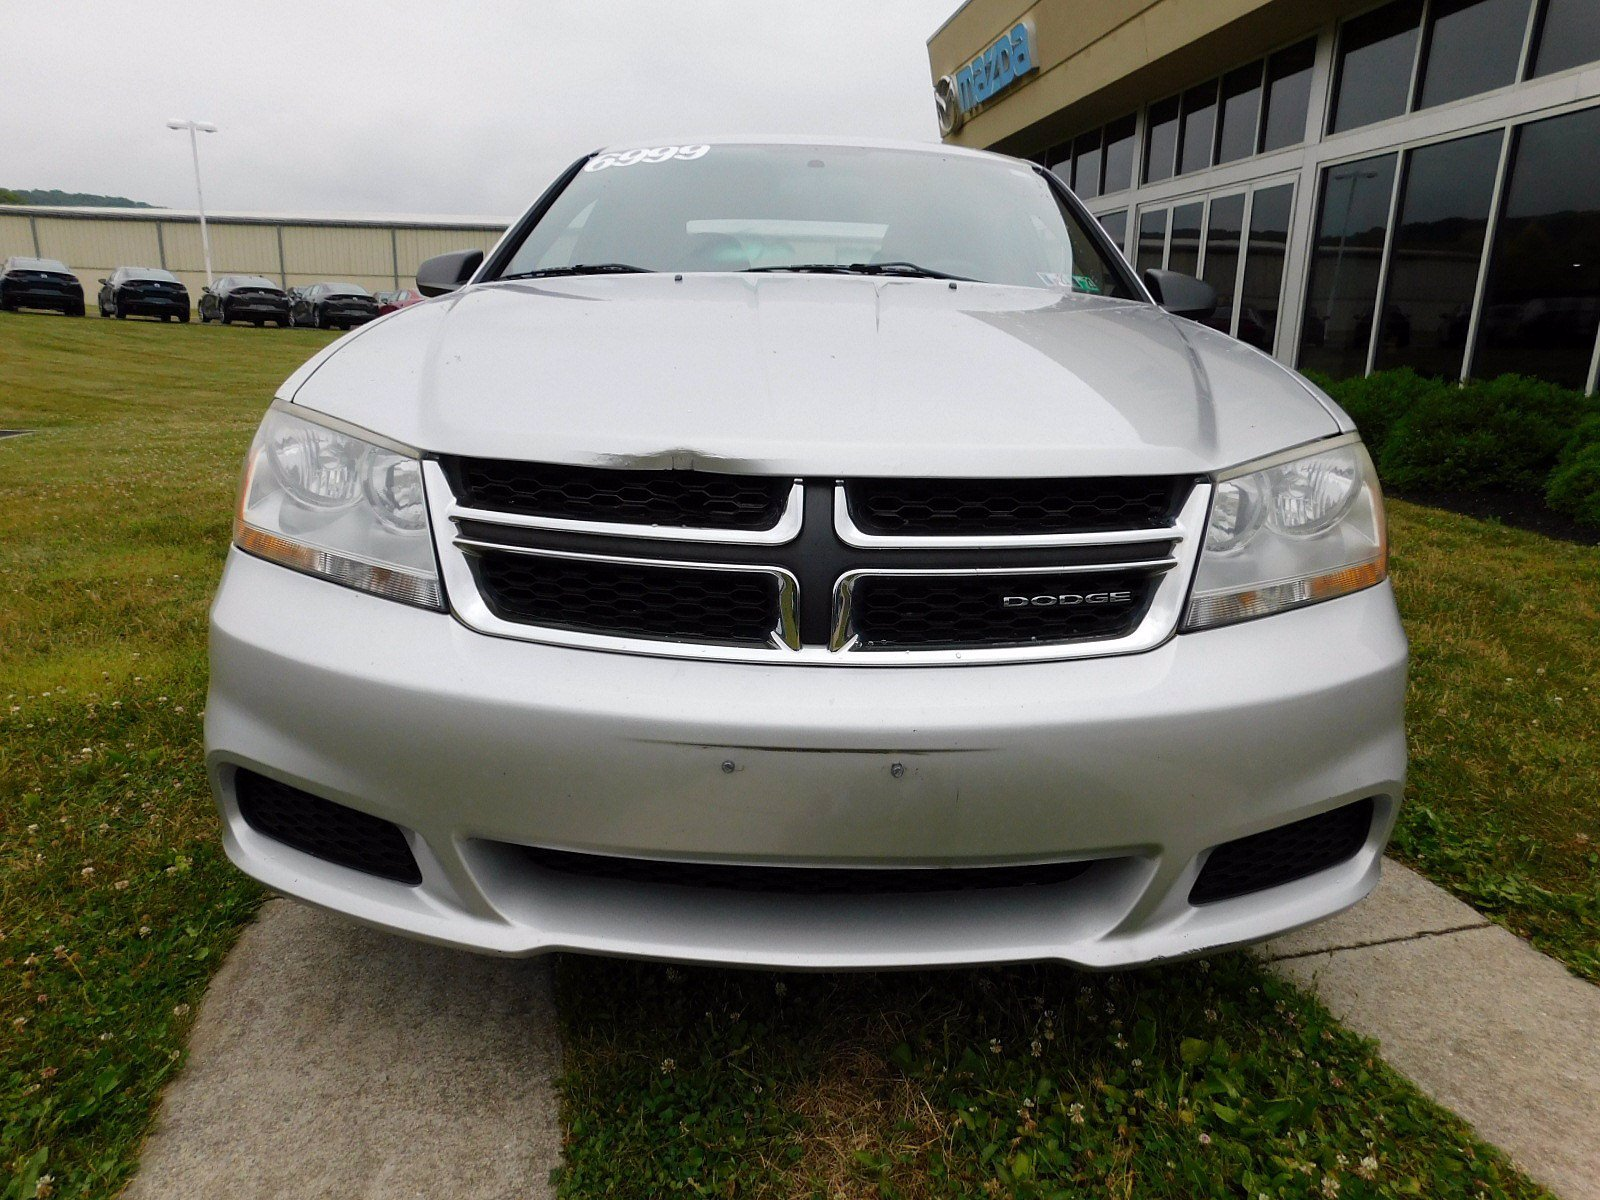 Pre-Owned 2011 Dodge Avenger Express